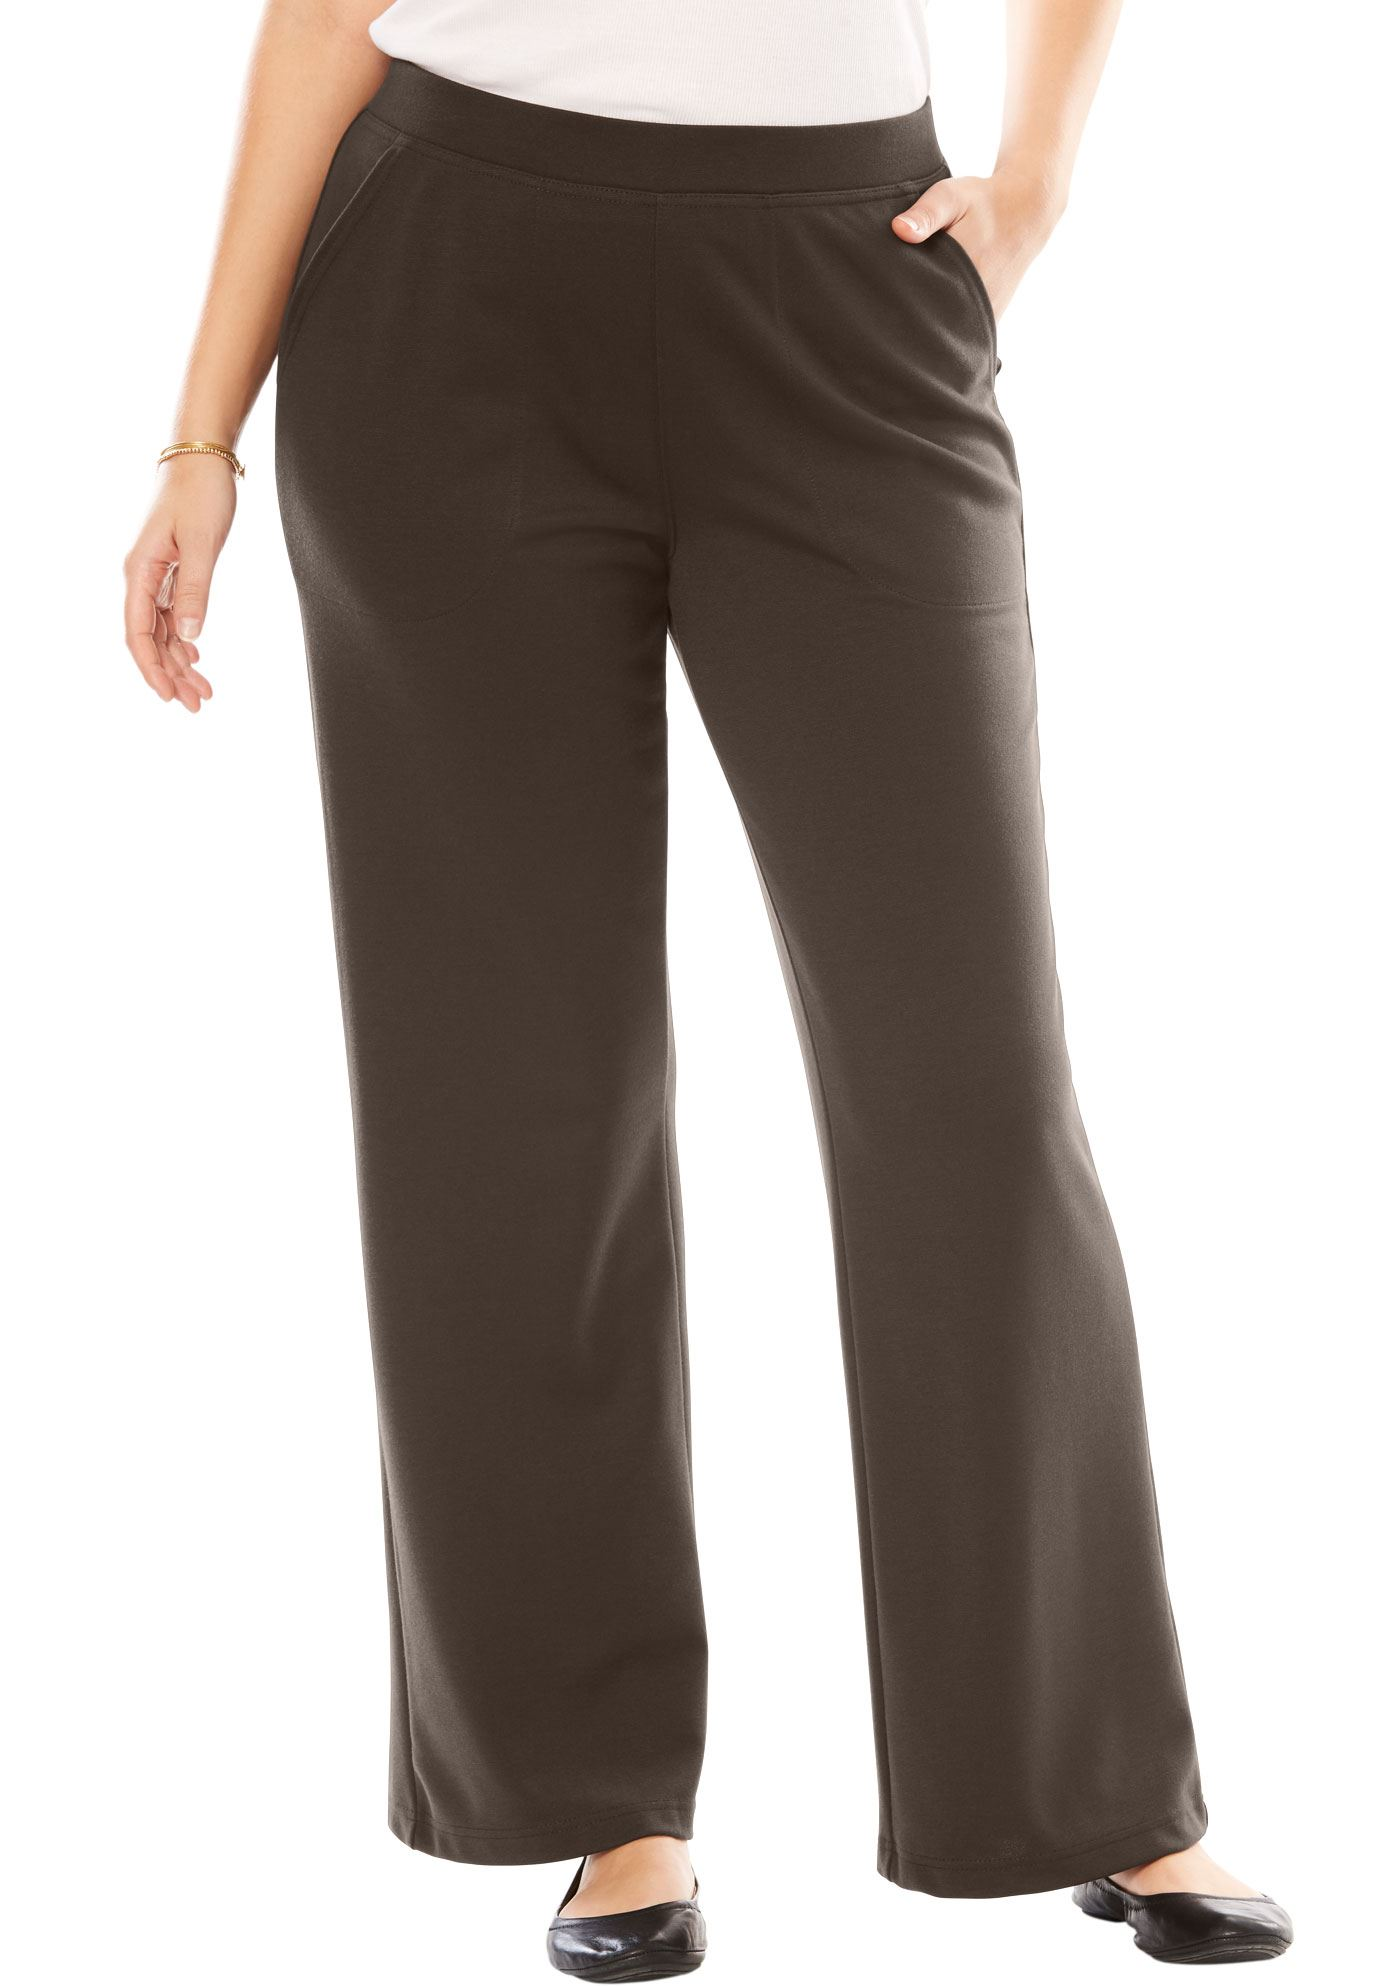 Woman Within Plus Size Petite Wide Leg Ponte Knit Pant